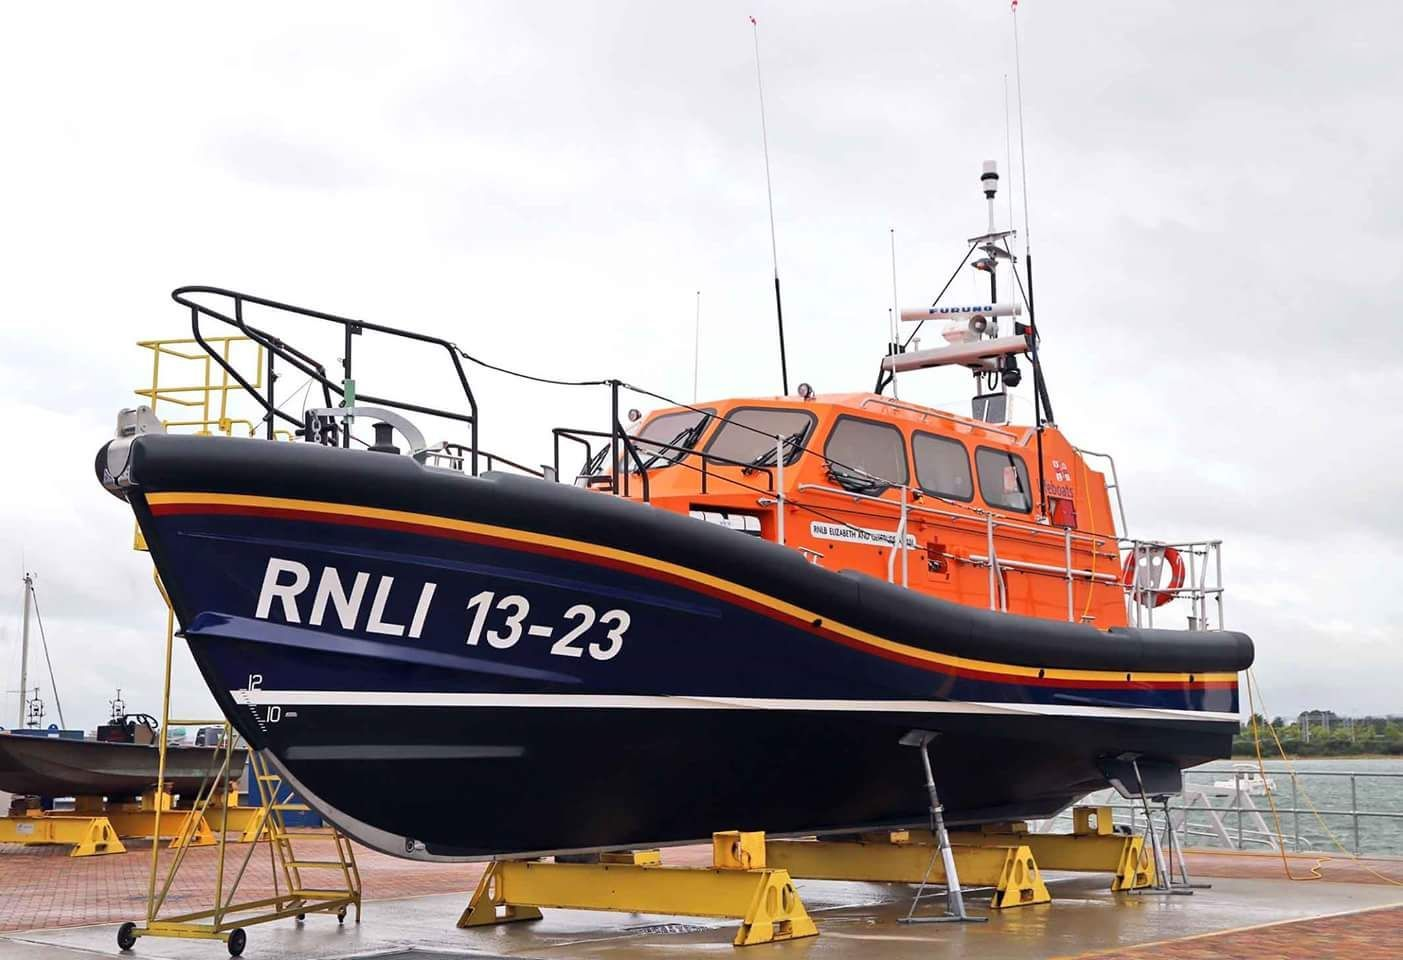 The state-of-the-art lifeboat